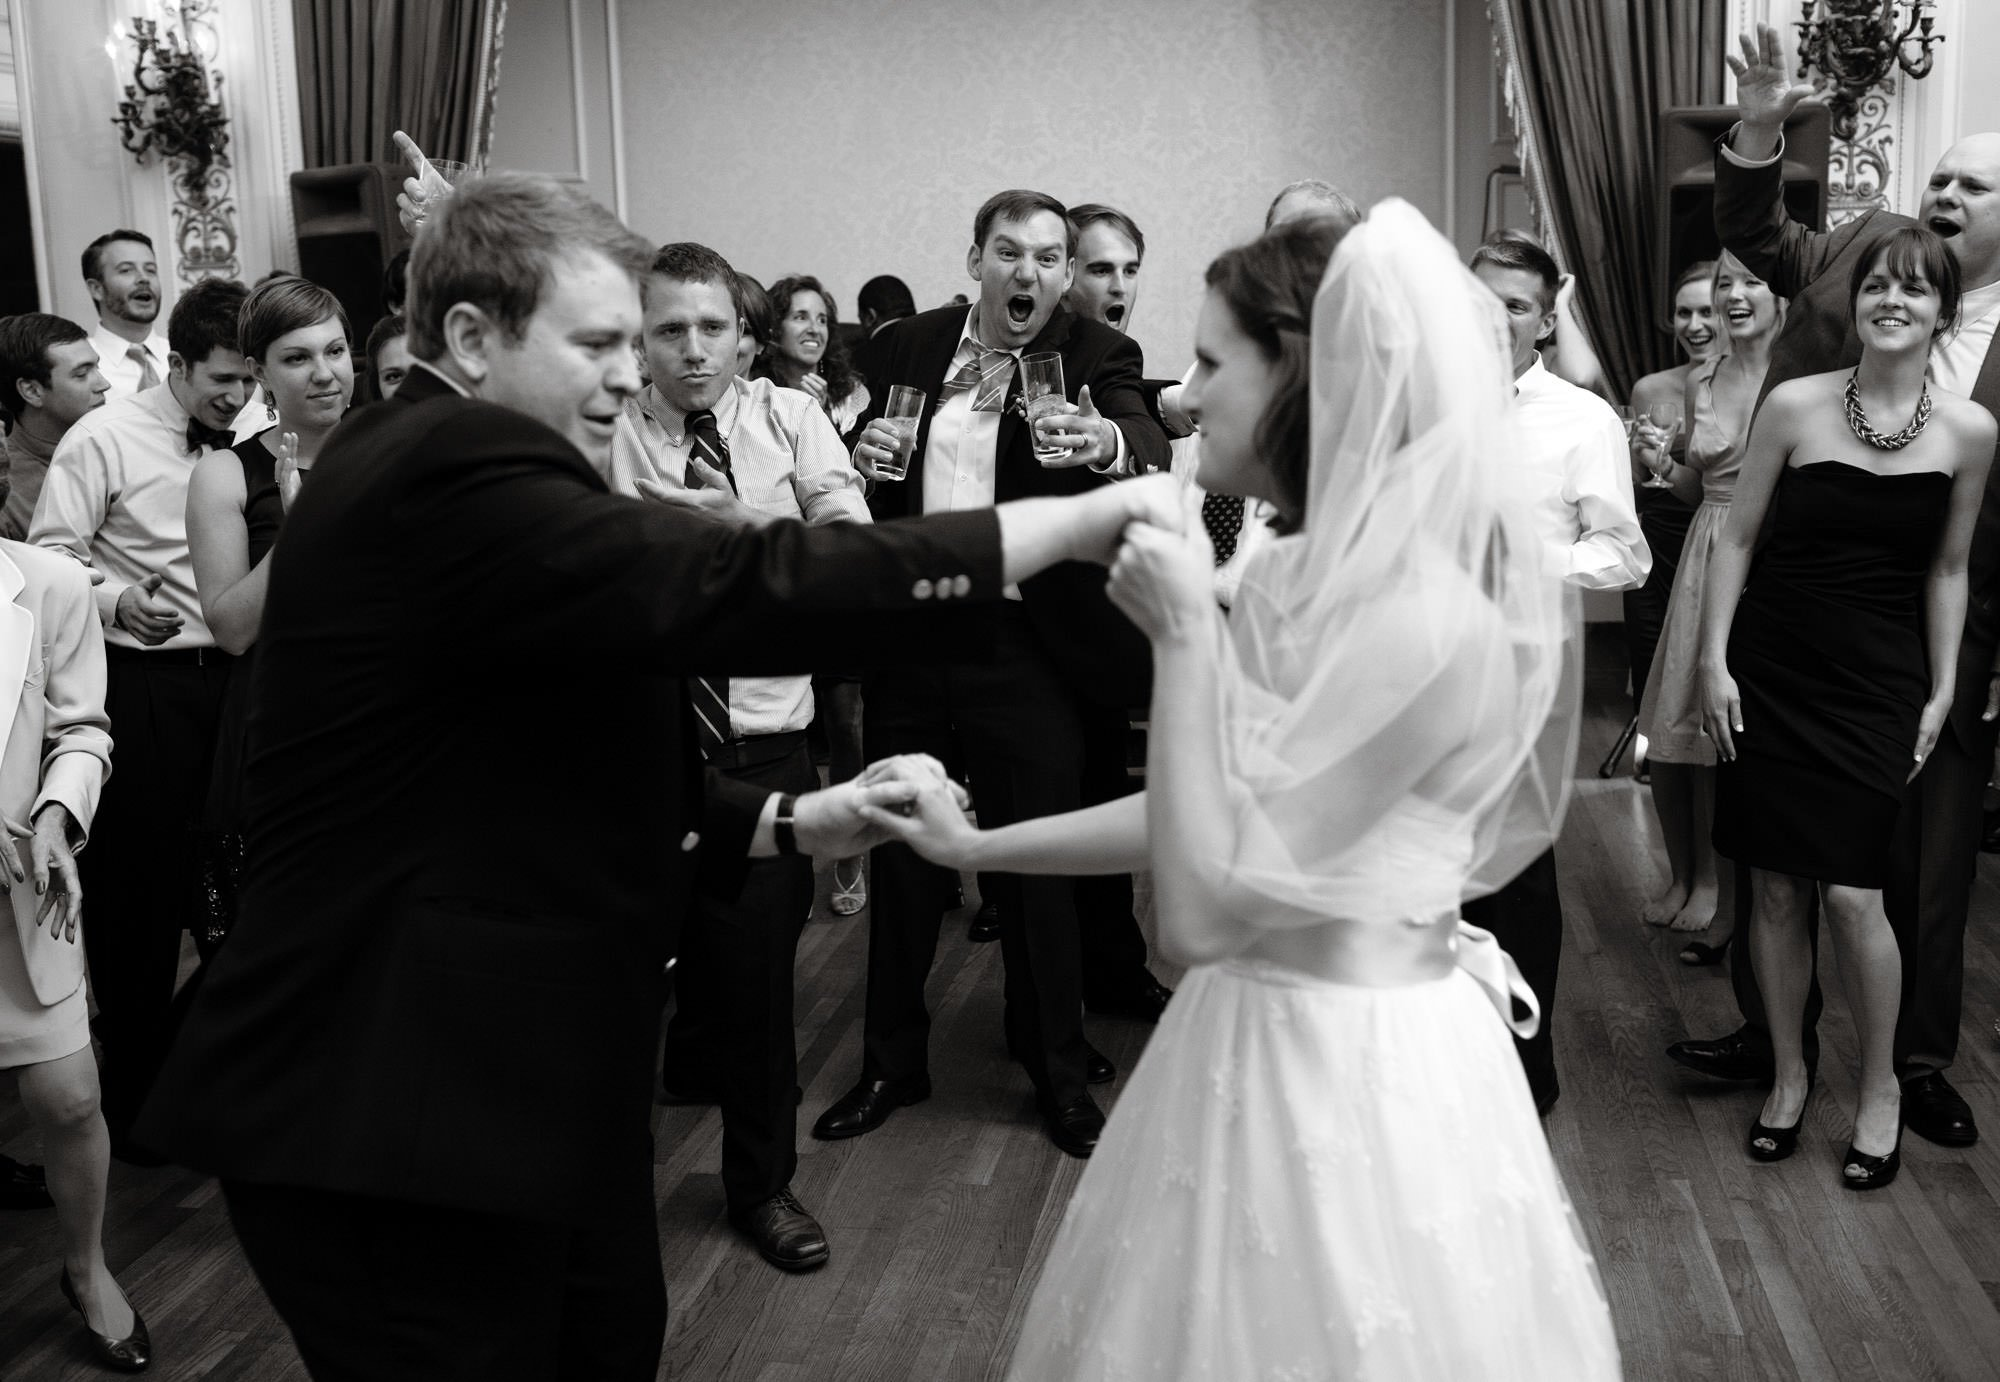 Guests cheer on the bride and groom during their first dance at their Sulgrave Club wedding reception.